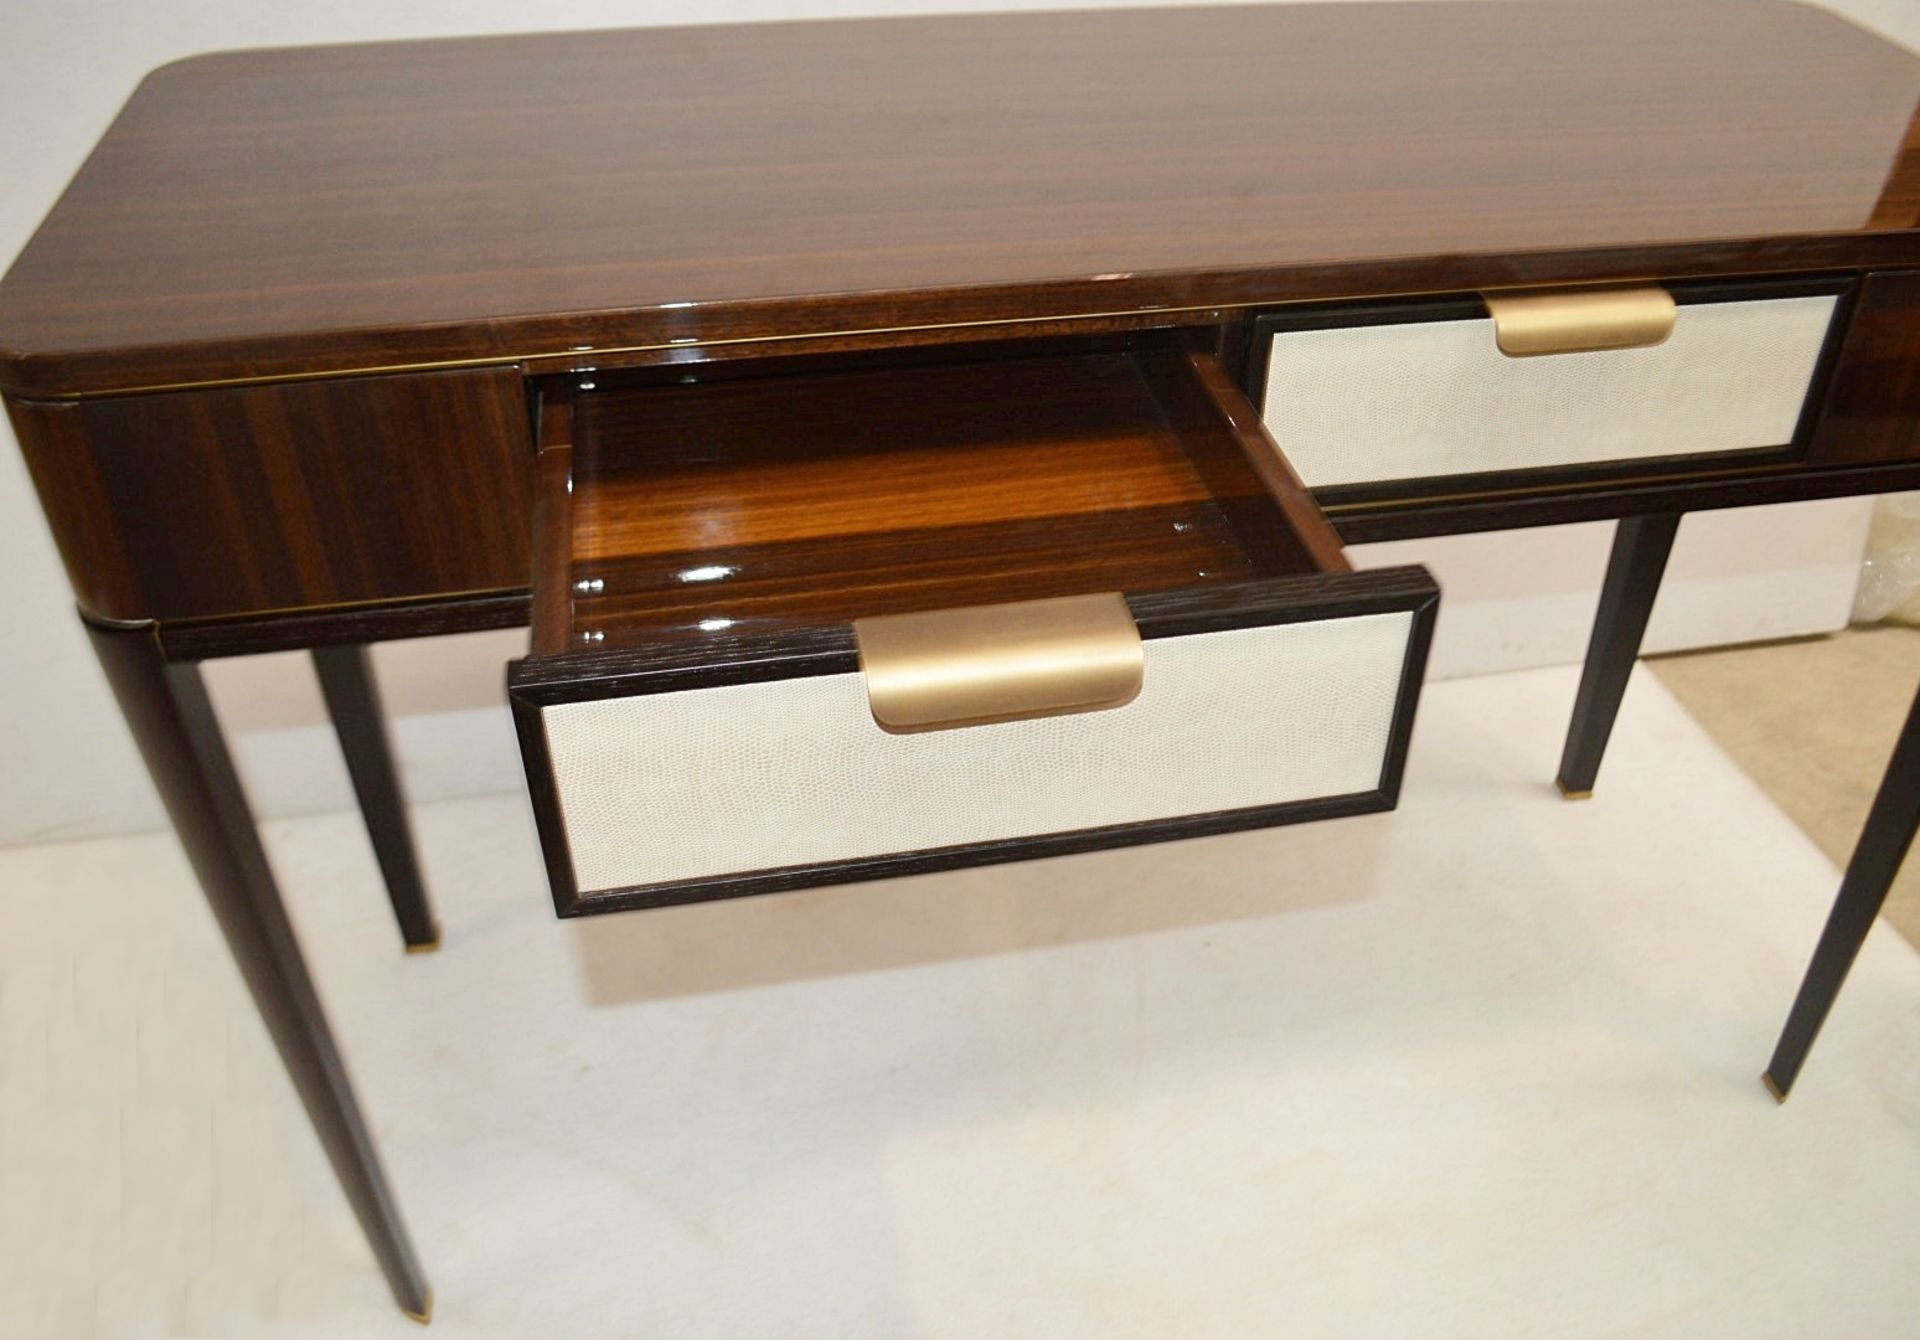 1 x FRATO 'Mandalay' Luxury Designer 2-Drawer Dresser Dressing Table In A Gloss Finish - RRP £4,300 - Image 6 of 17